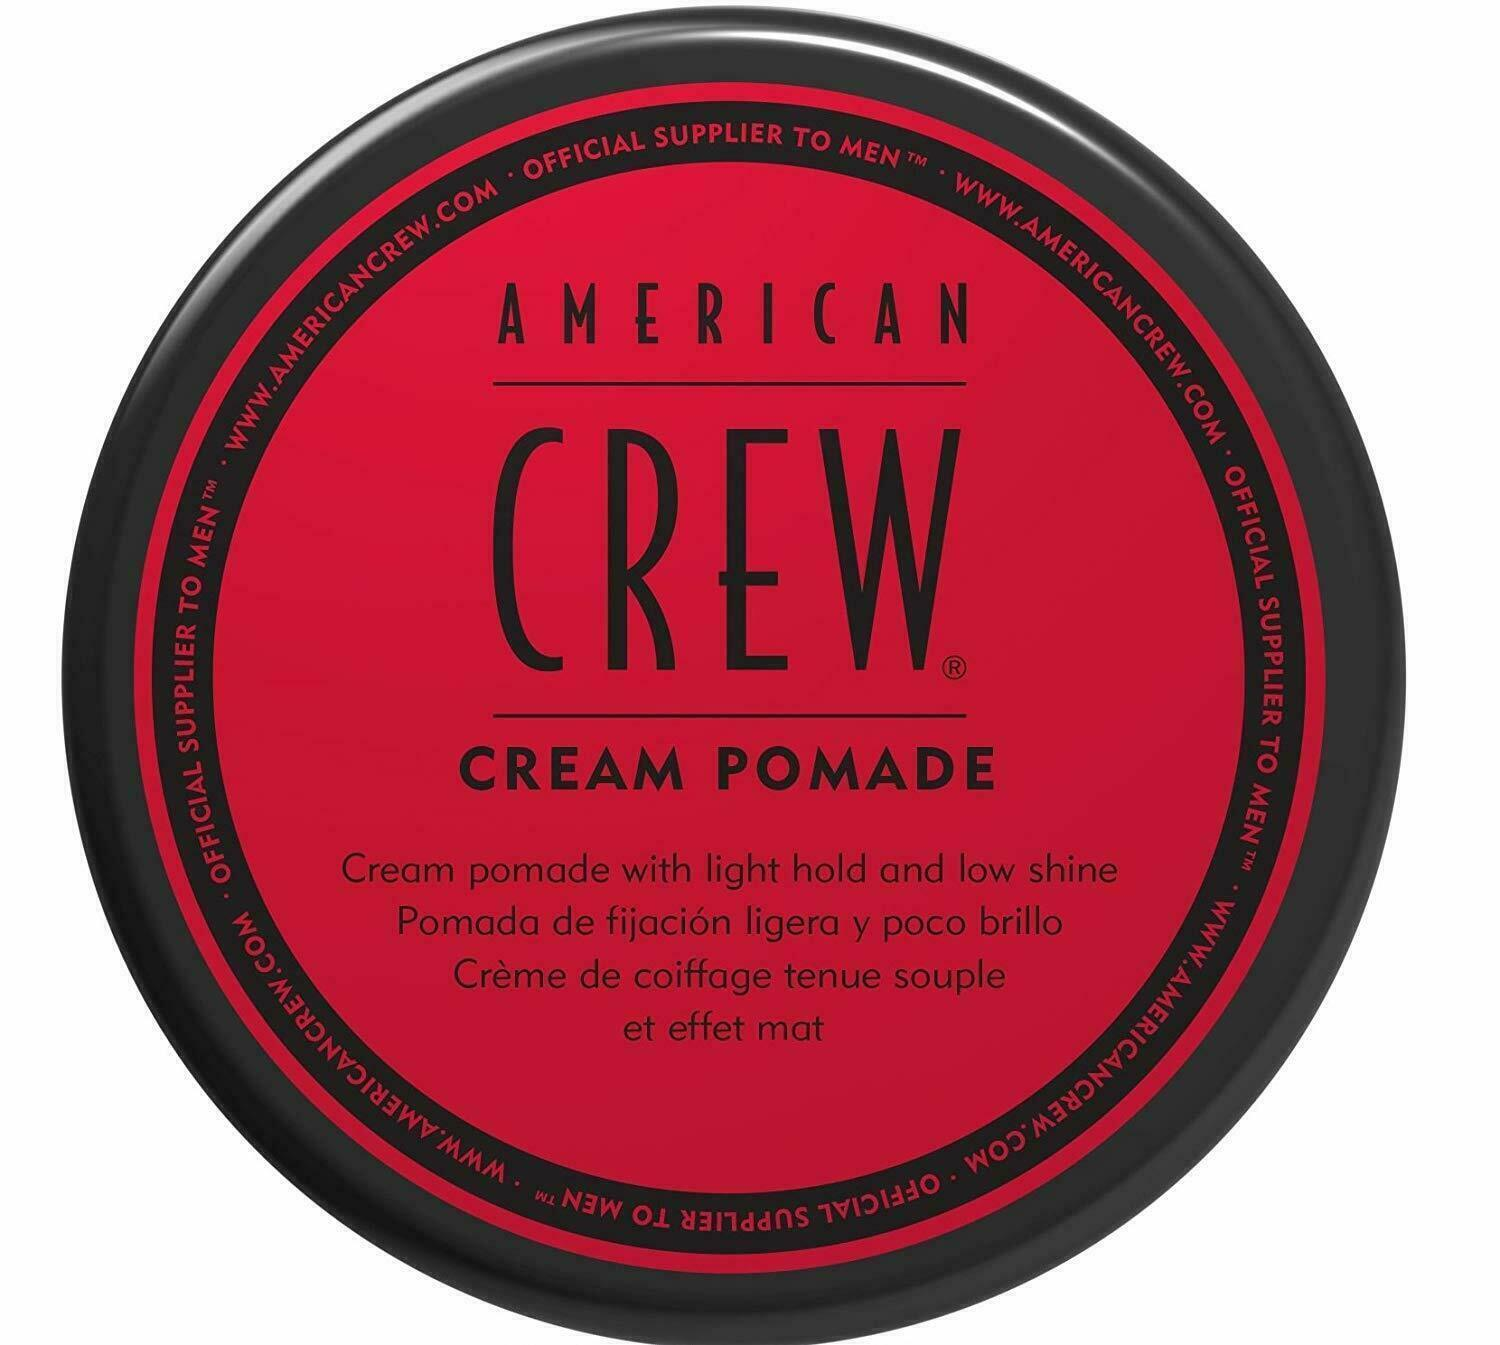 NEW American Crew 3oz Cream Pomade - Cream Pomade with Light